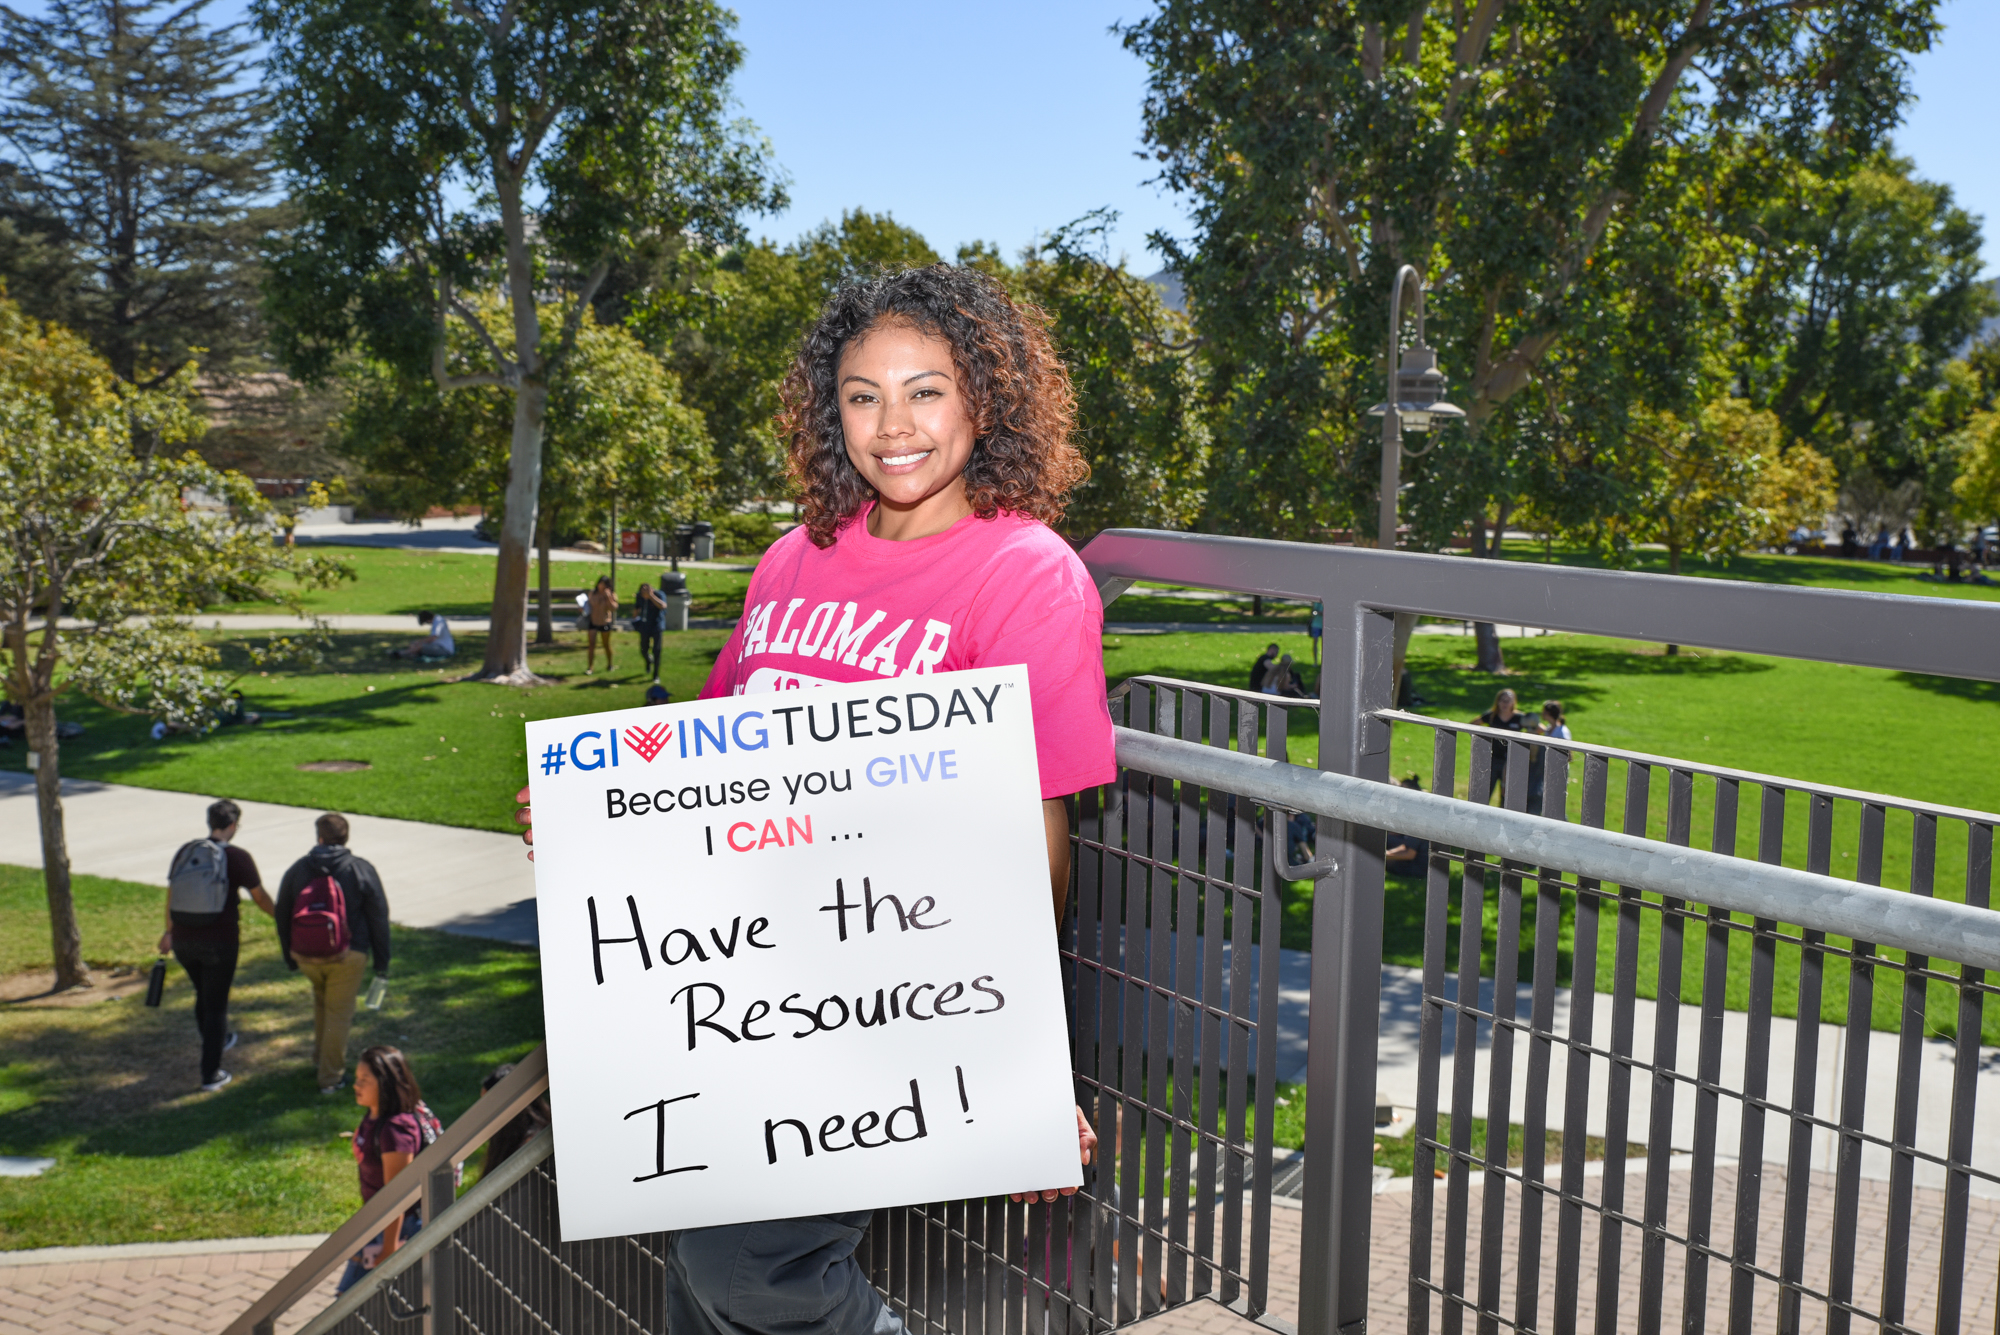 Giving Tuesday at Palomar College Will Raise Two for One This Year